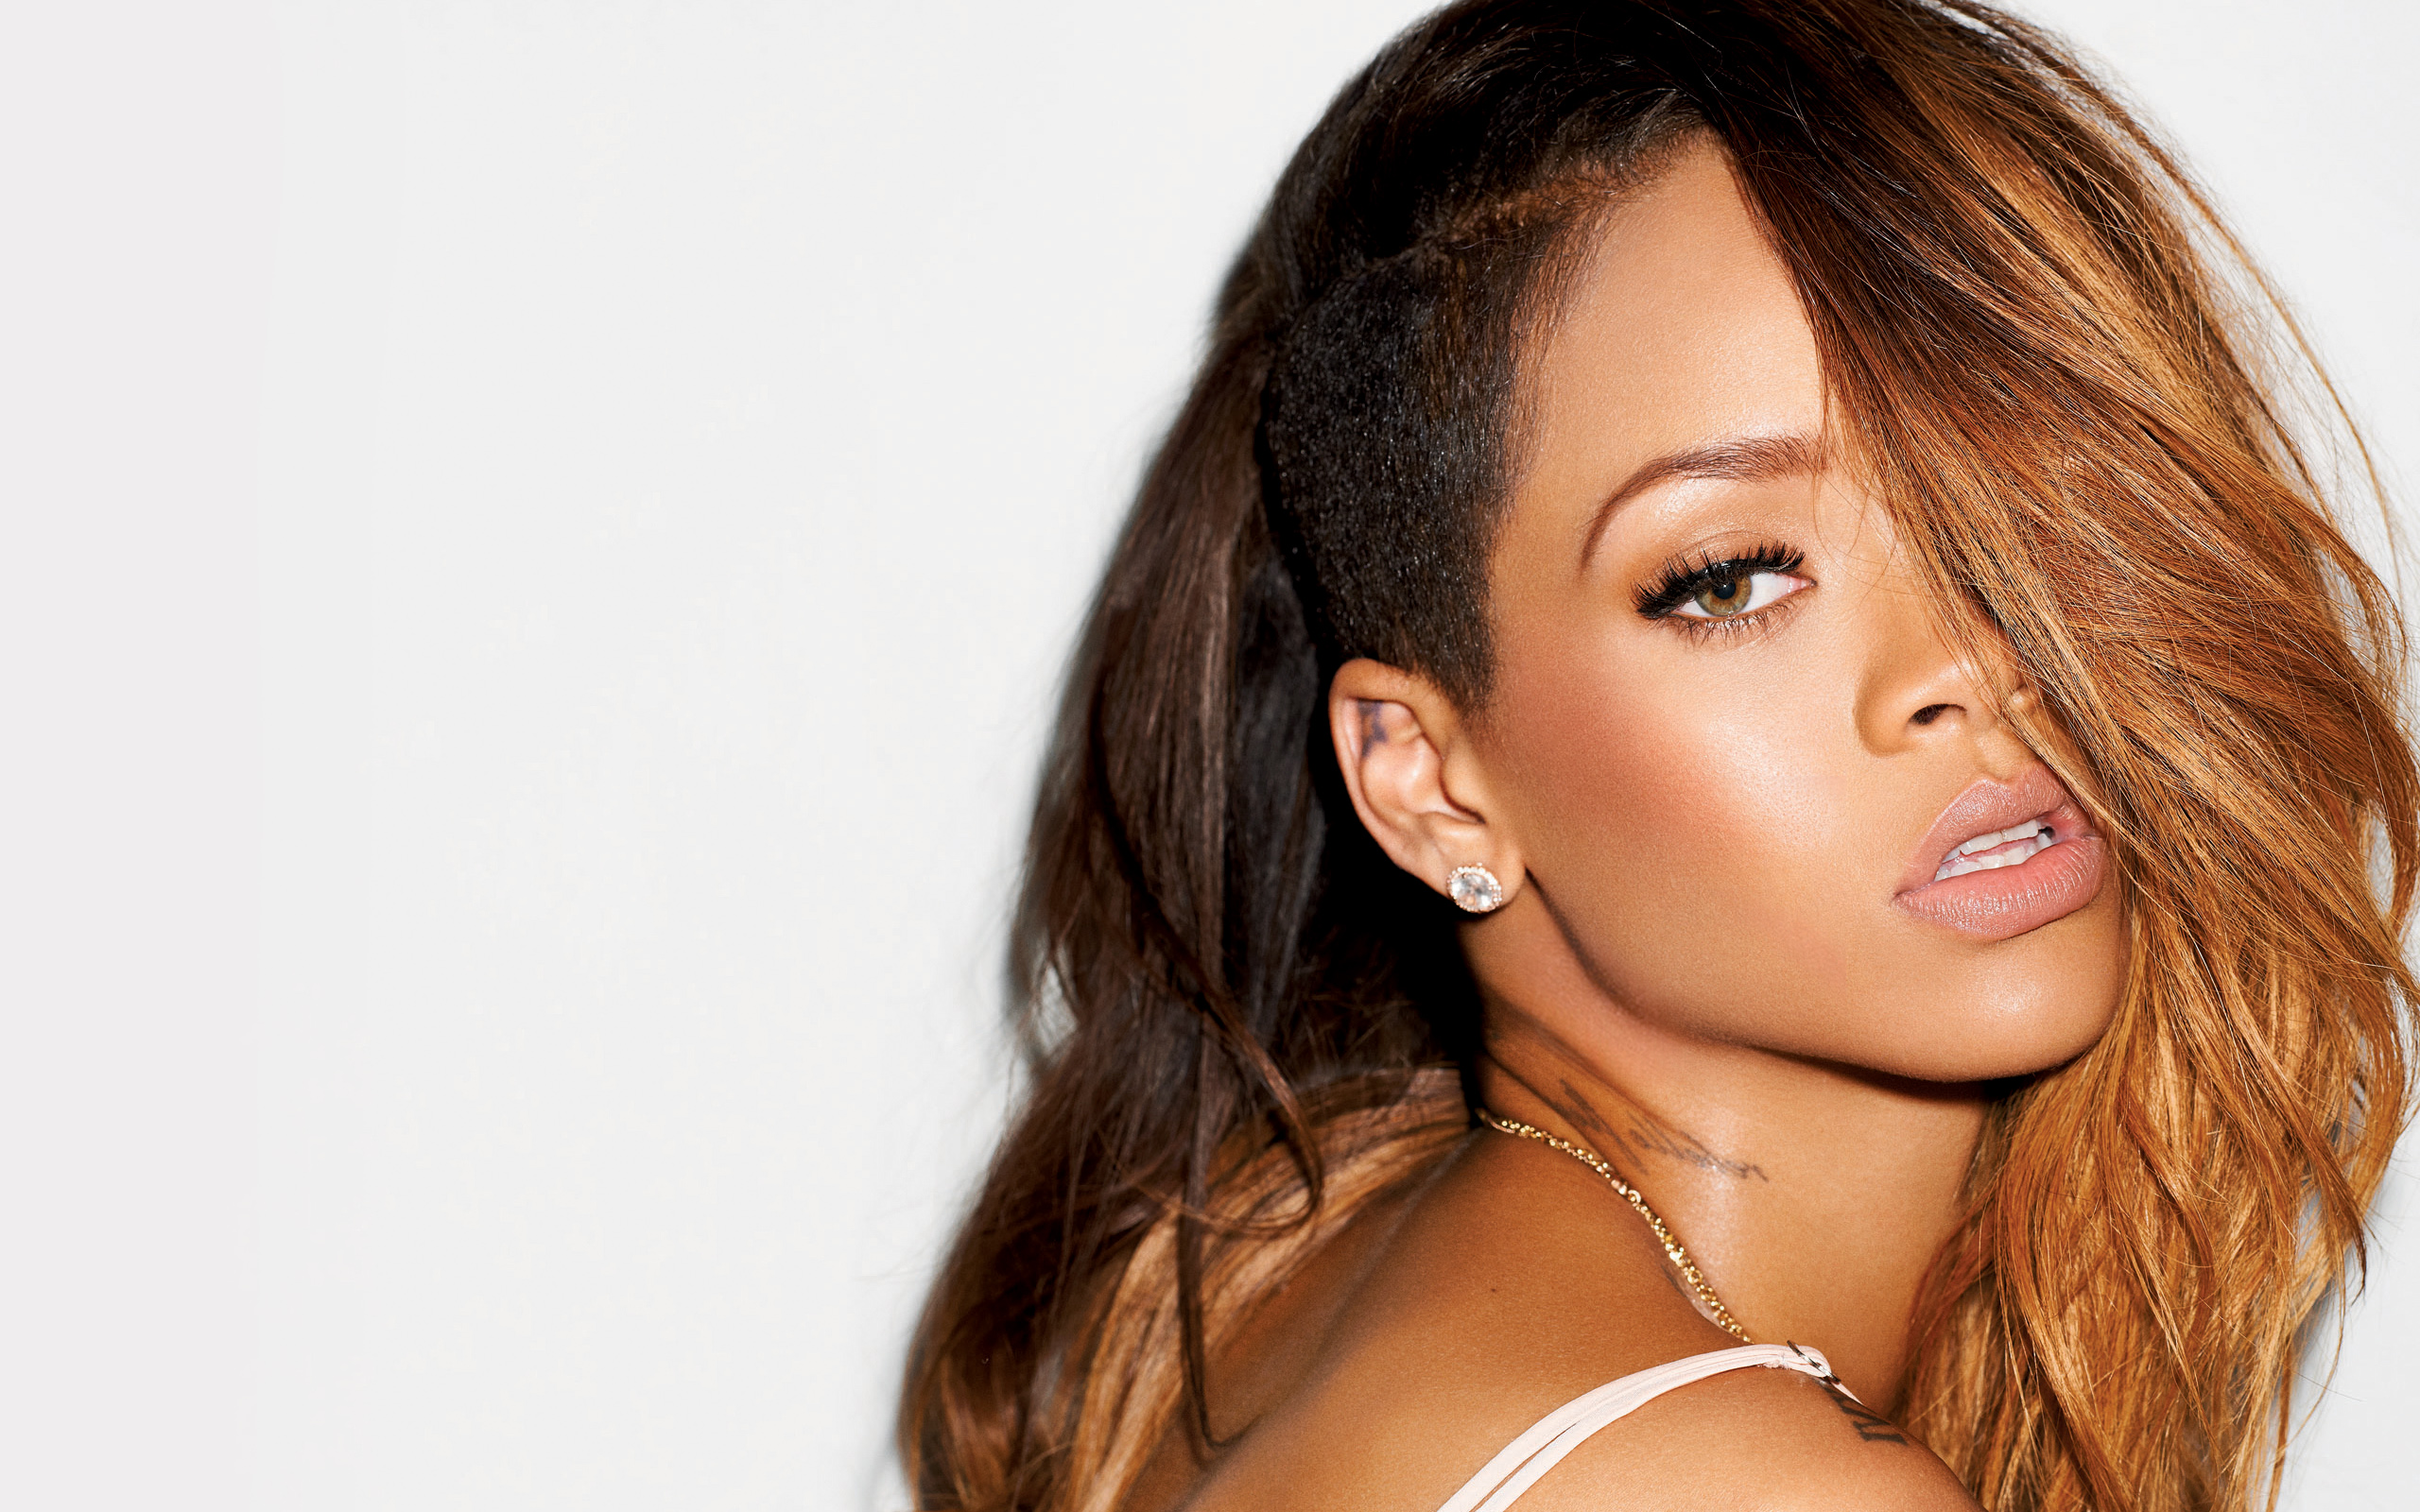 Hd majestic rihanna images voltagebd Image collections